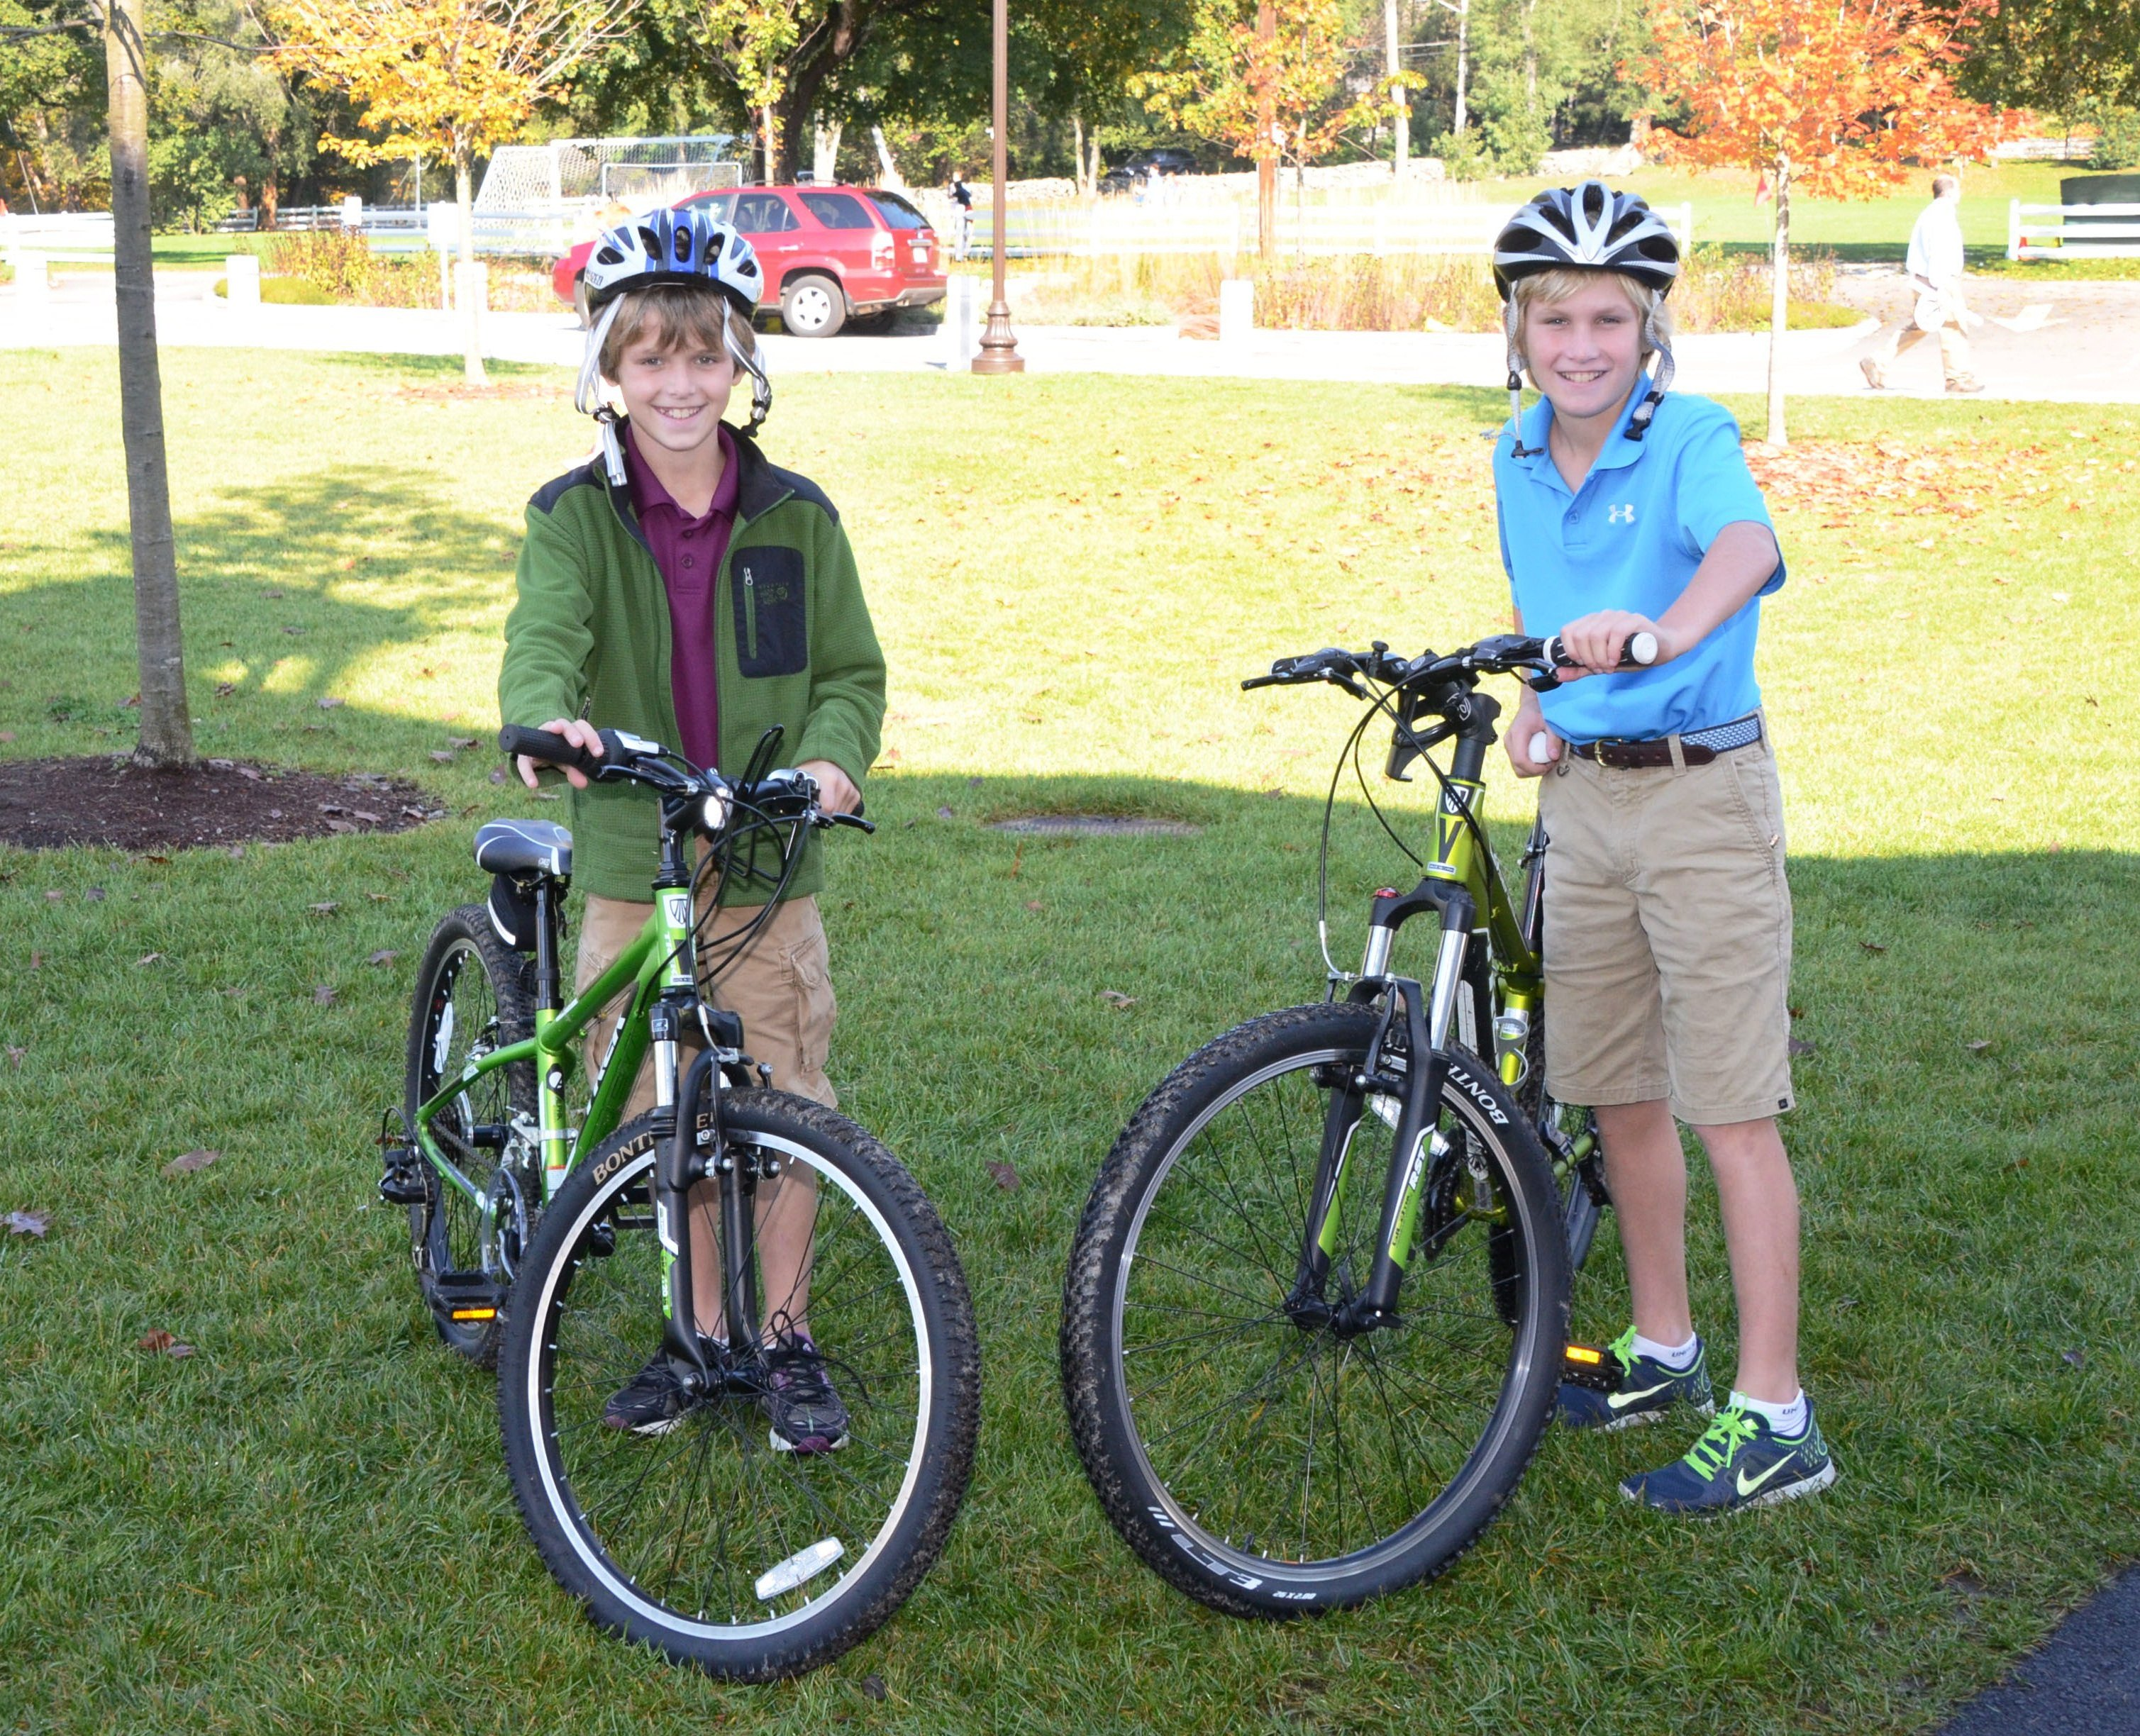 Fenn students standing with bicycles